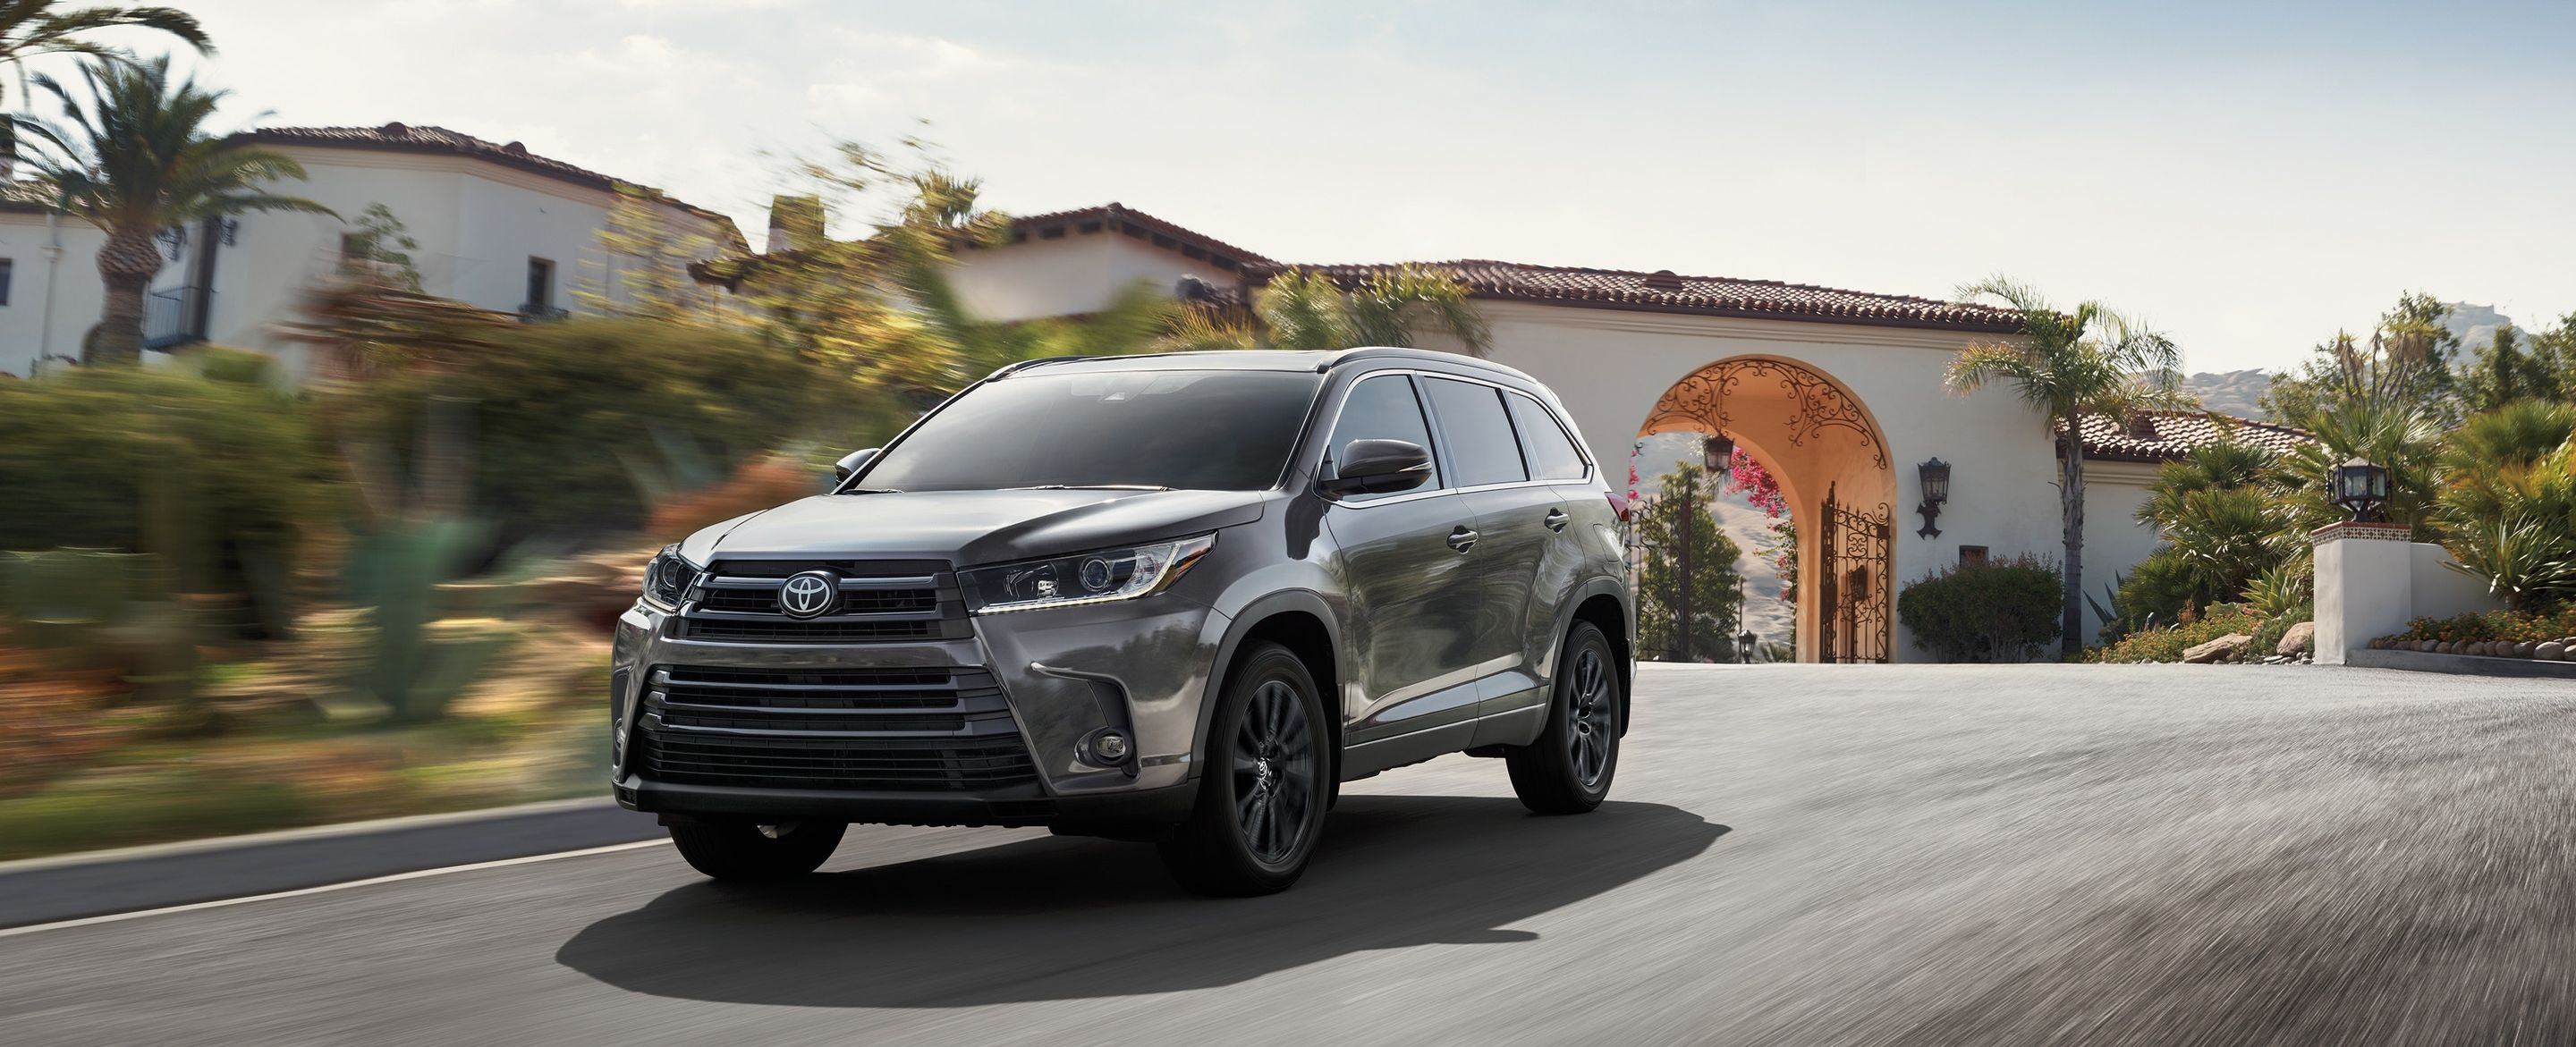 2019 Toyota Highlander Leasing near Cedar Rapids, IA